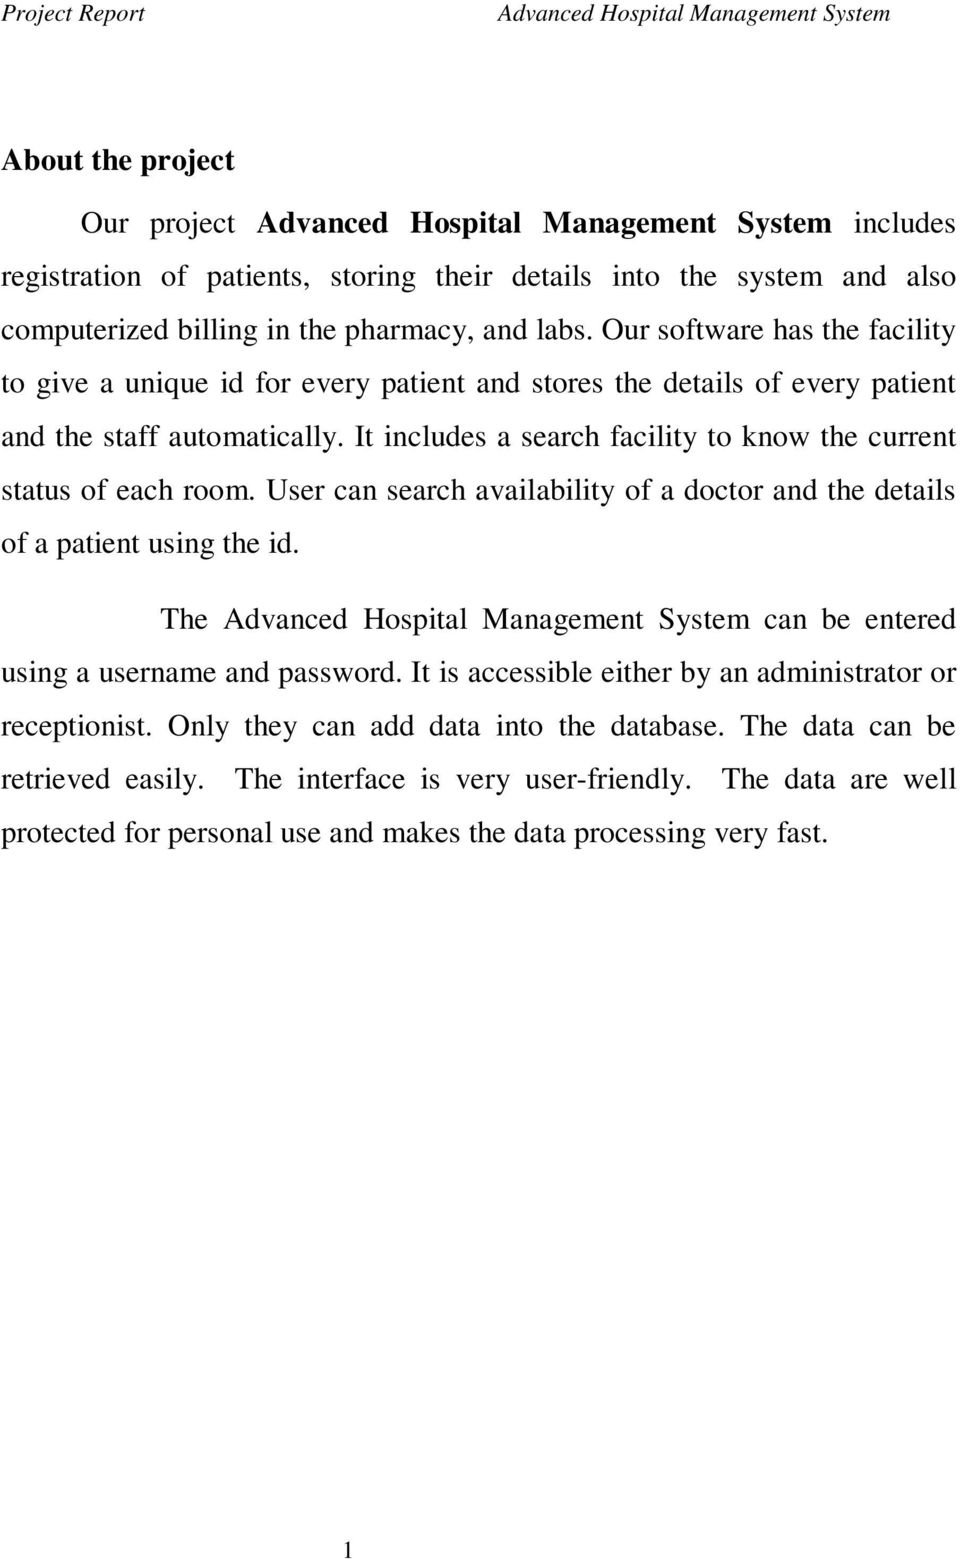 Advanced Hospital Management System  About the project - PDF